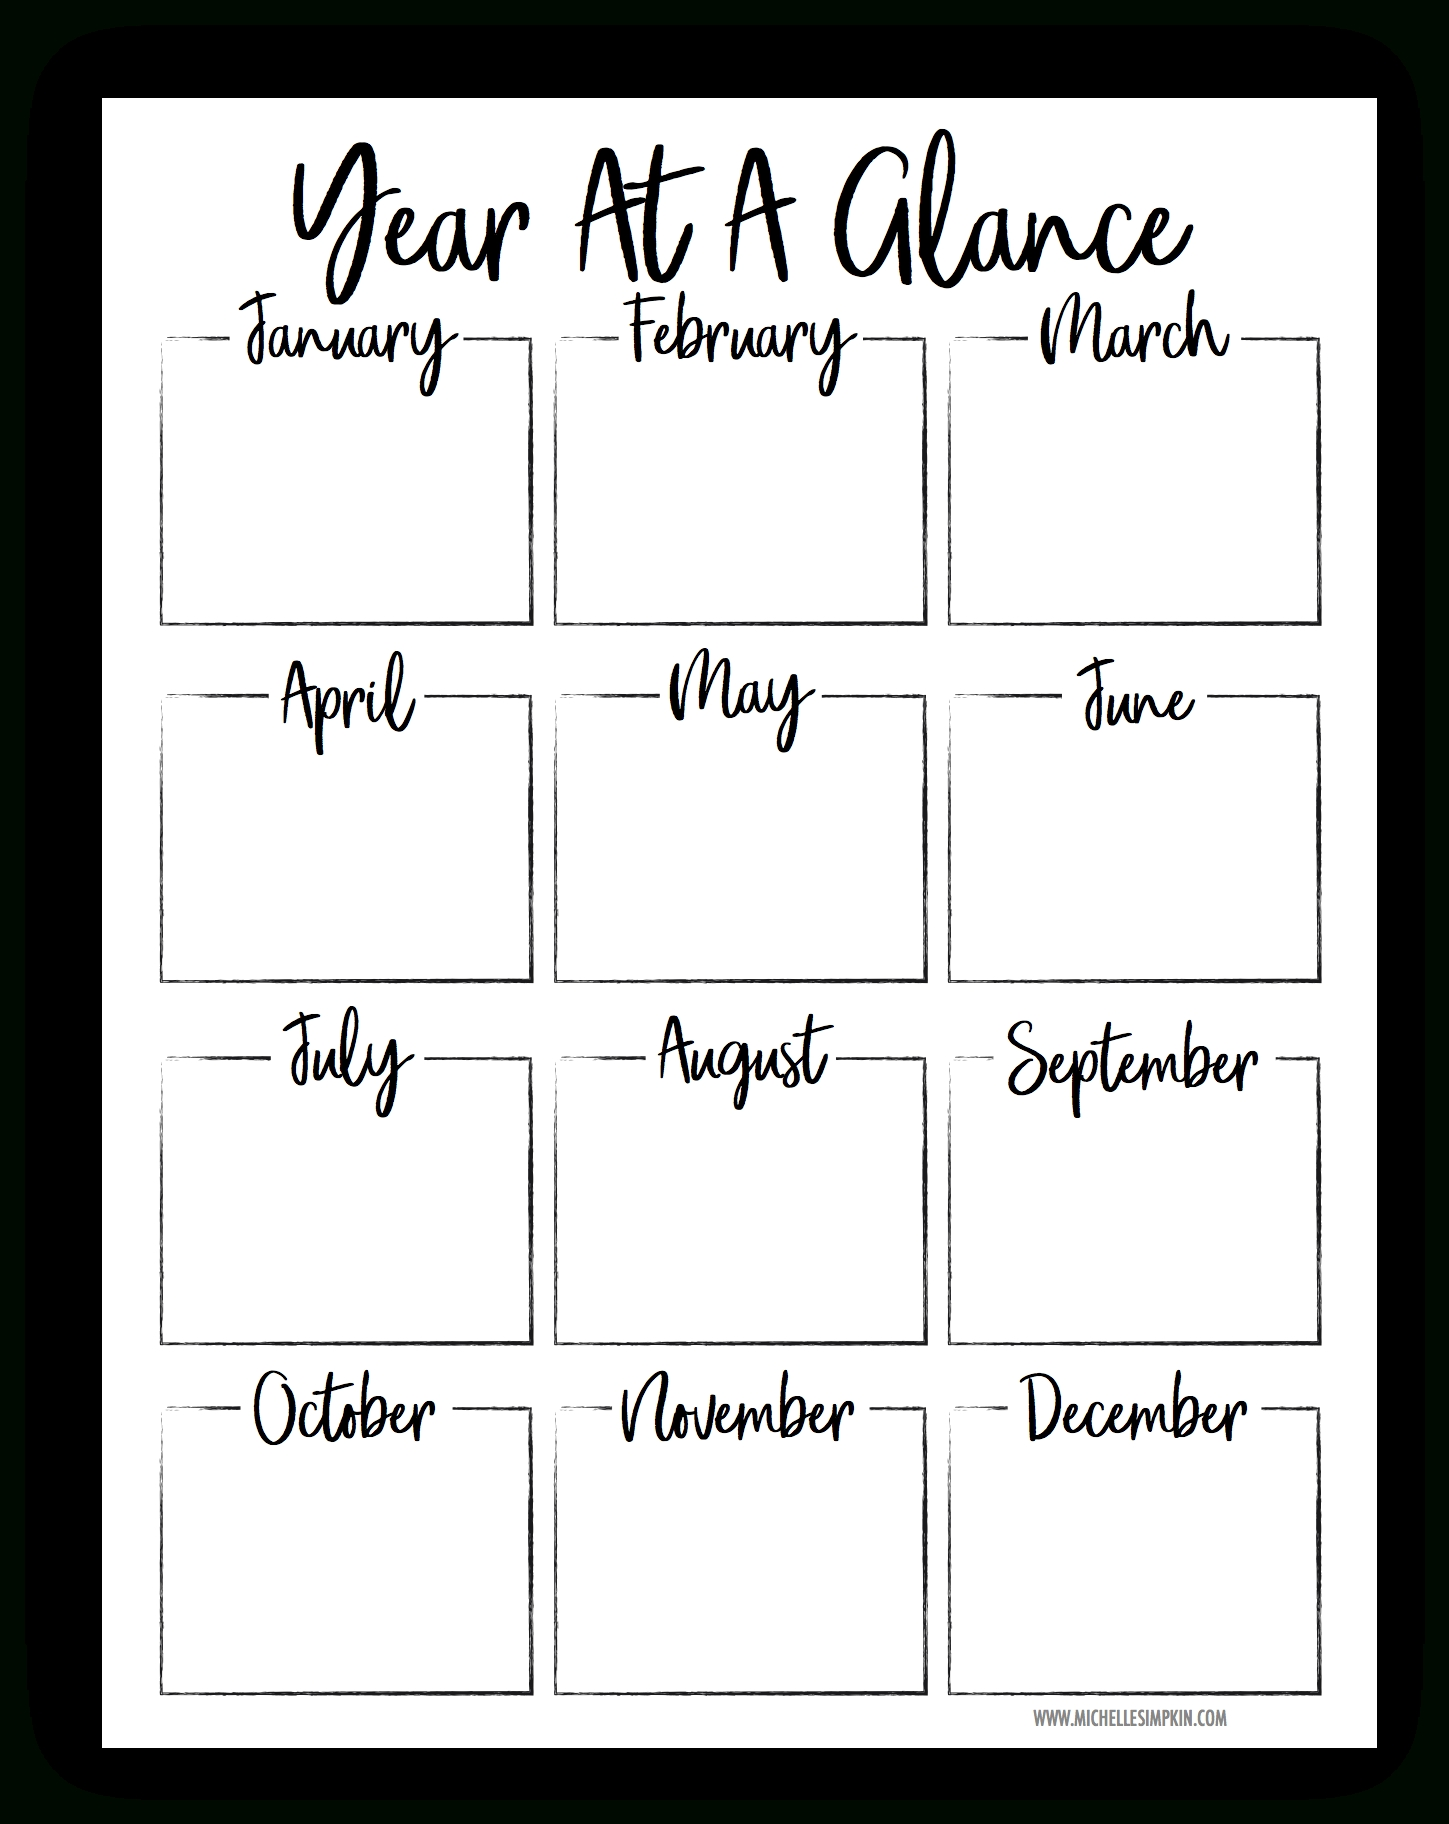 Year At A Glance Printable | Task Lists | Templates Printable Free for Year At A Glance Printable